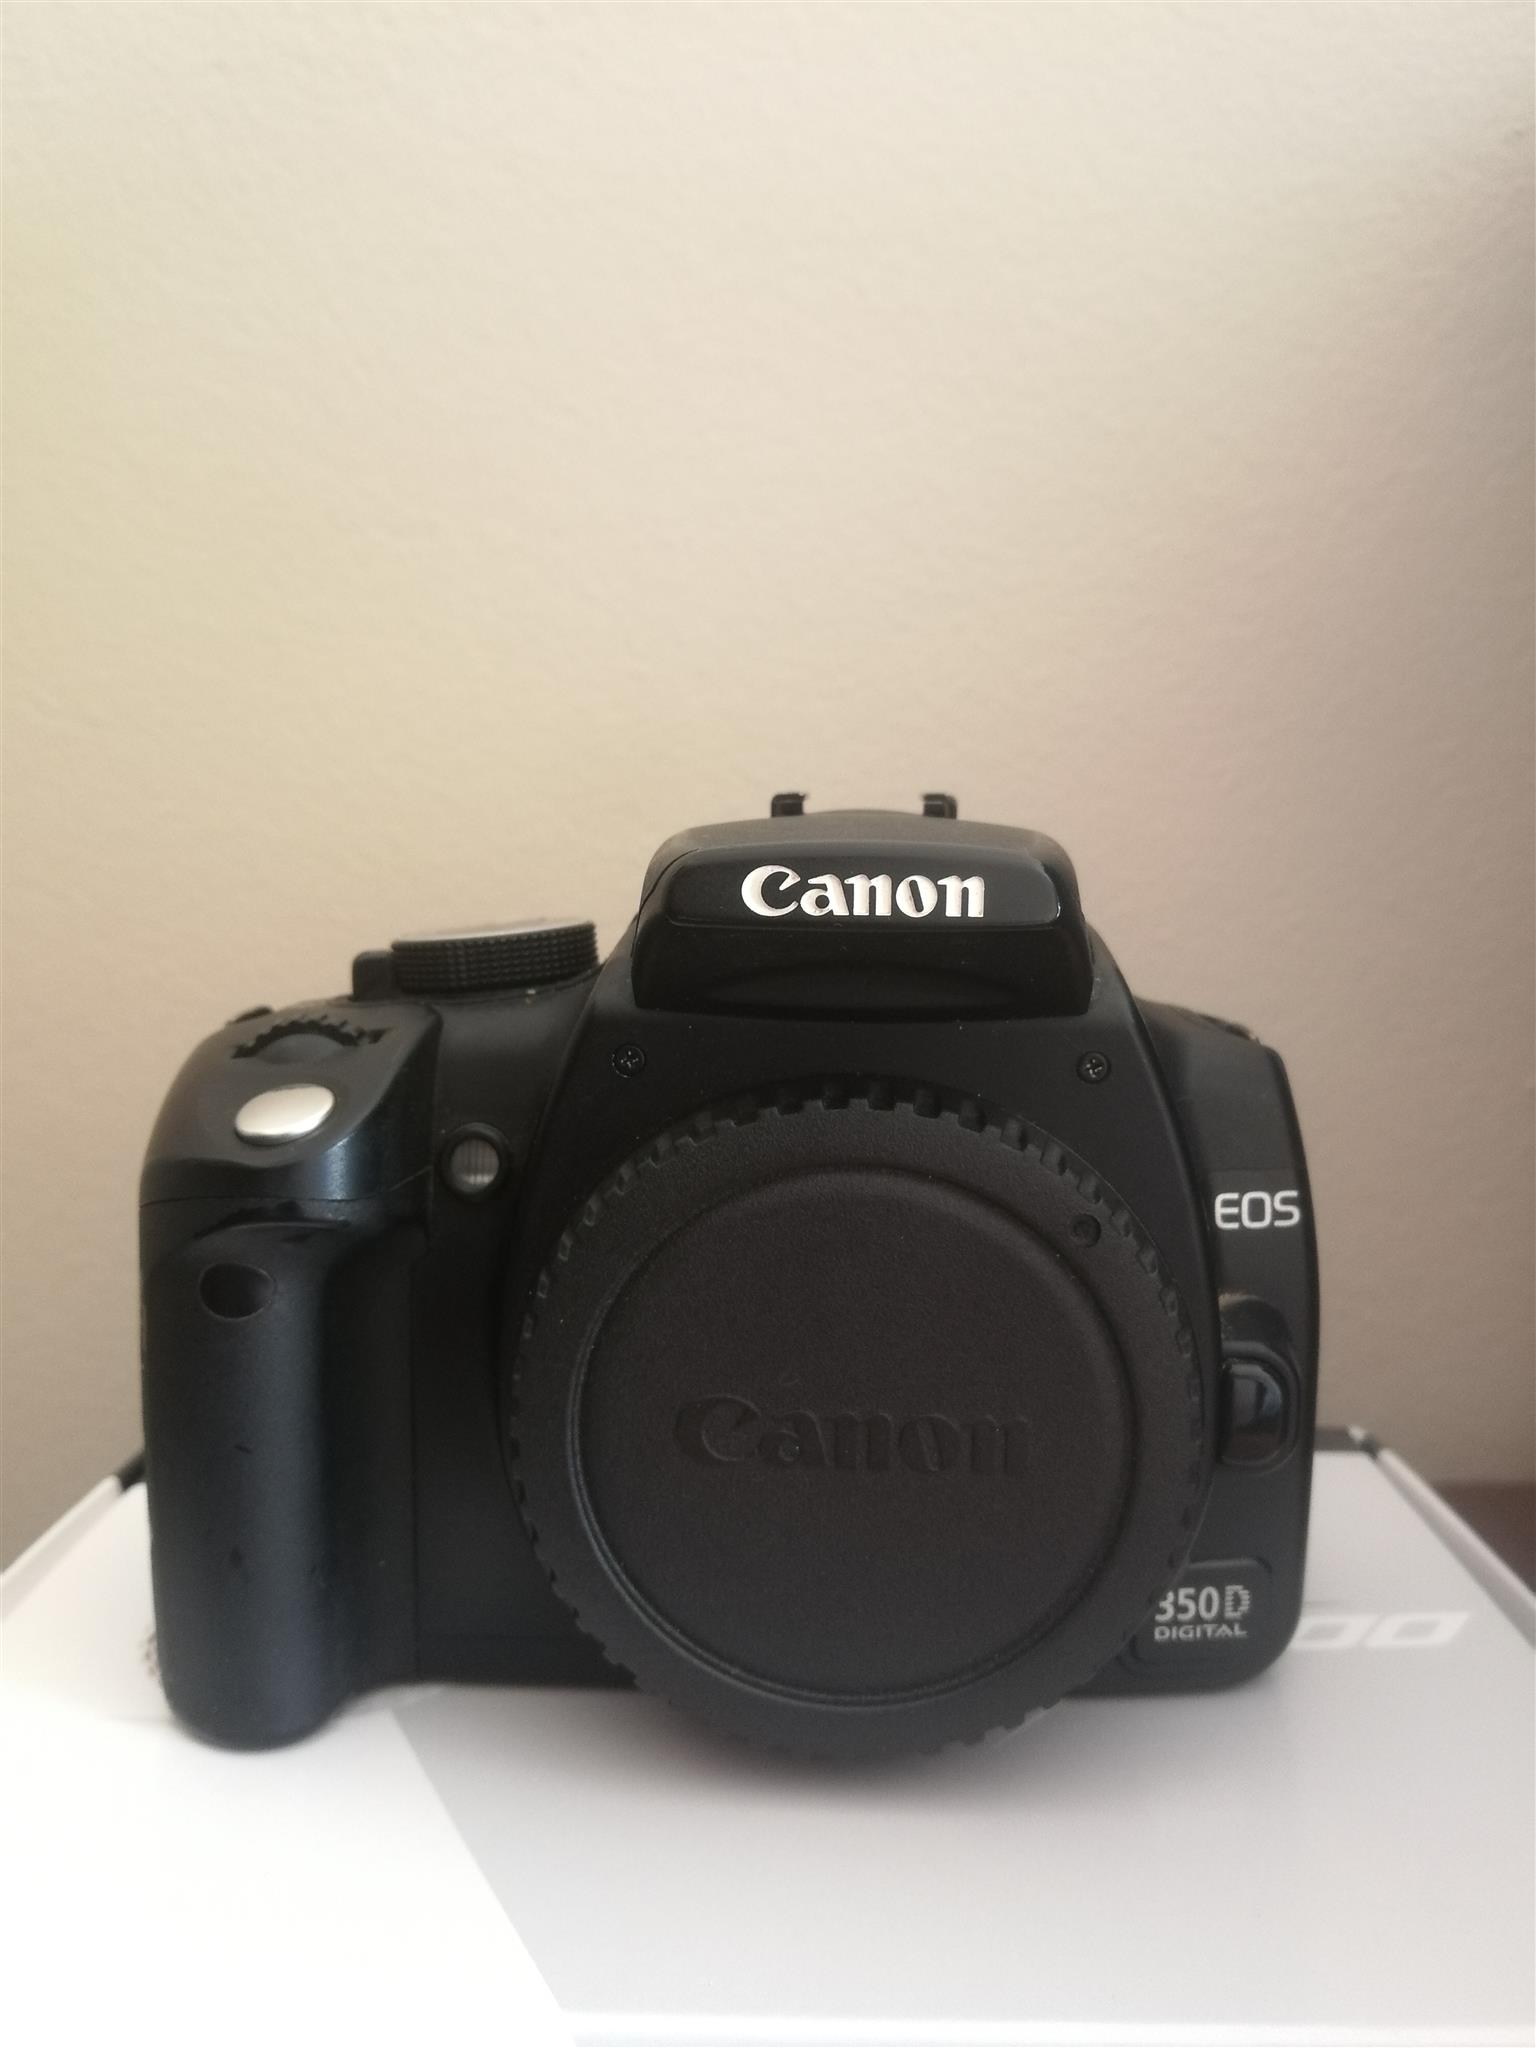 Canon 350D body+battery+charger. Manual included